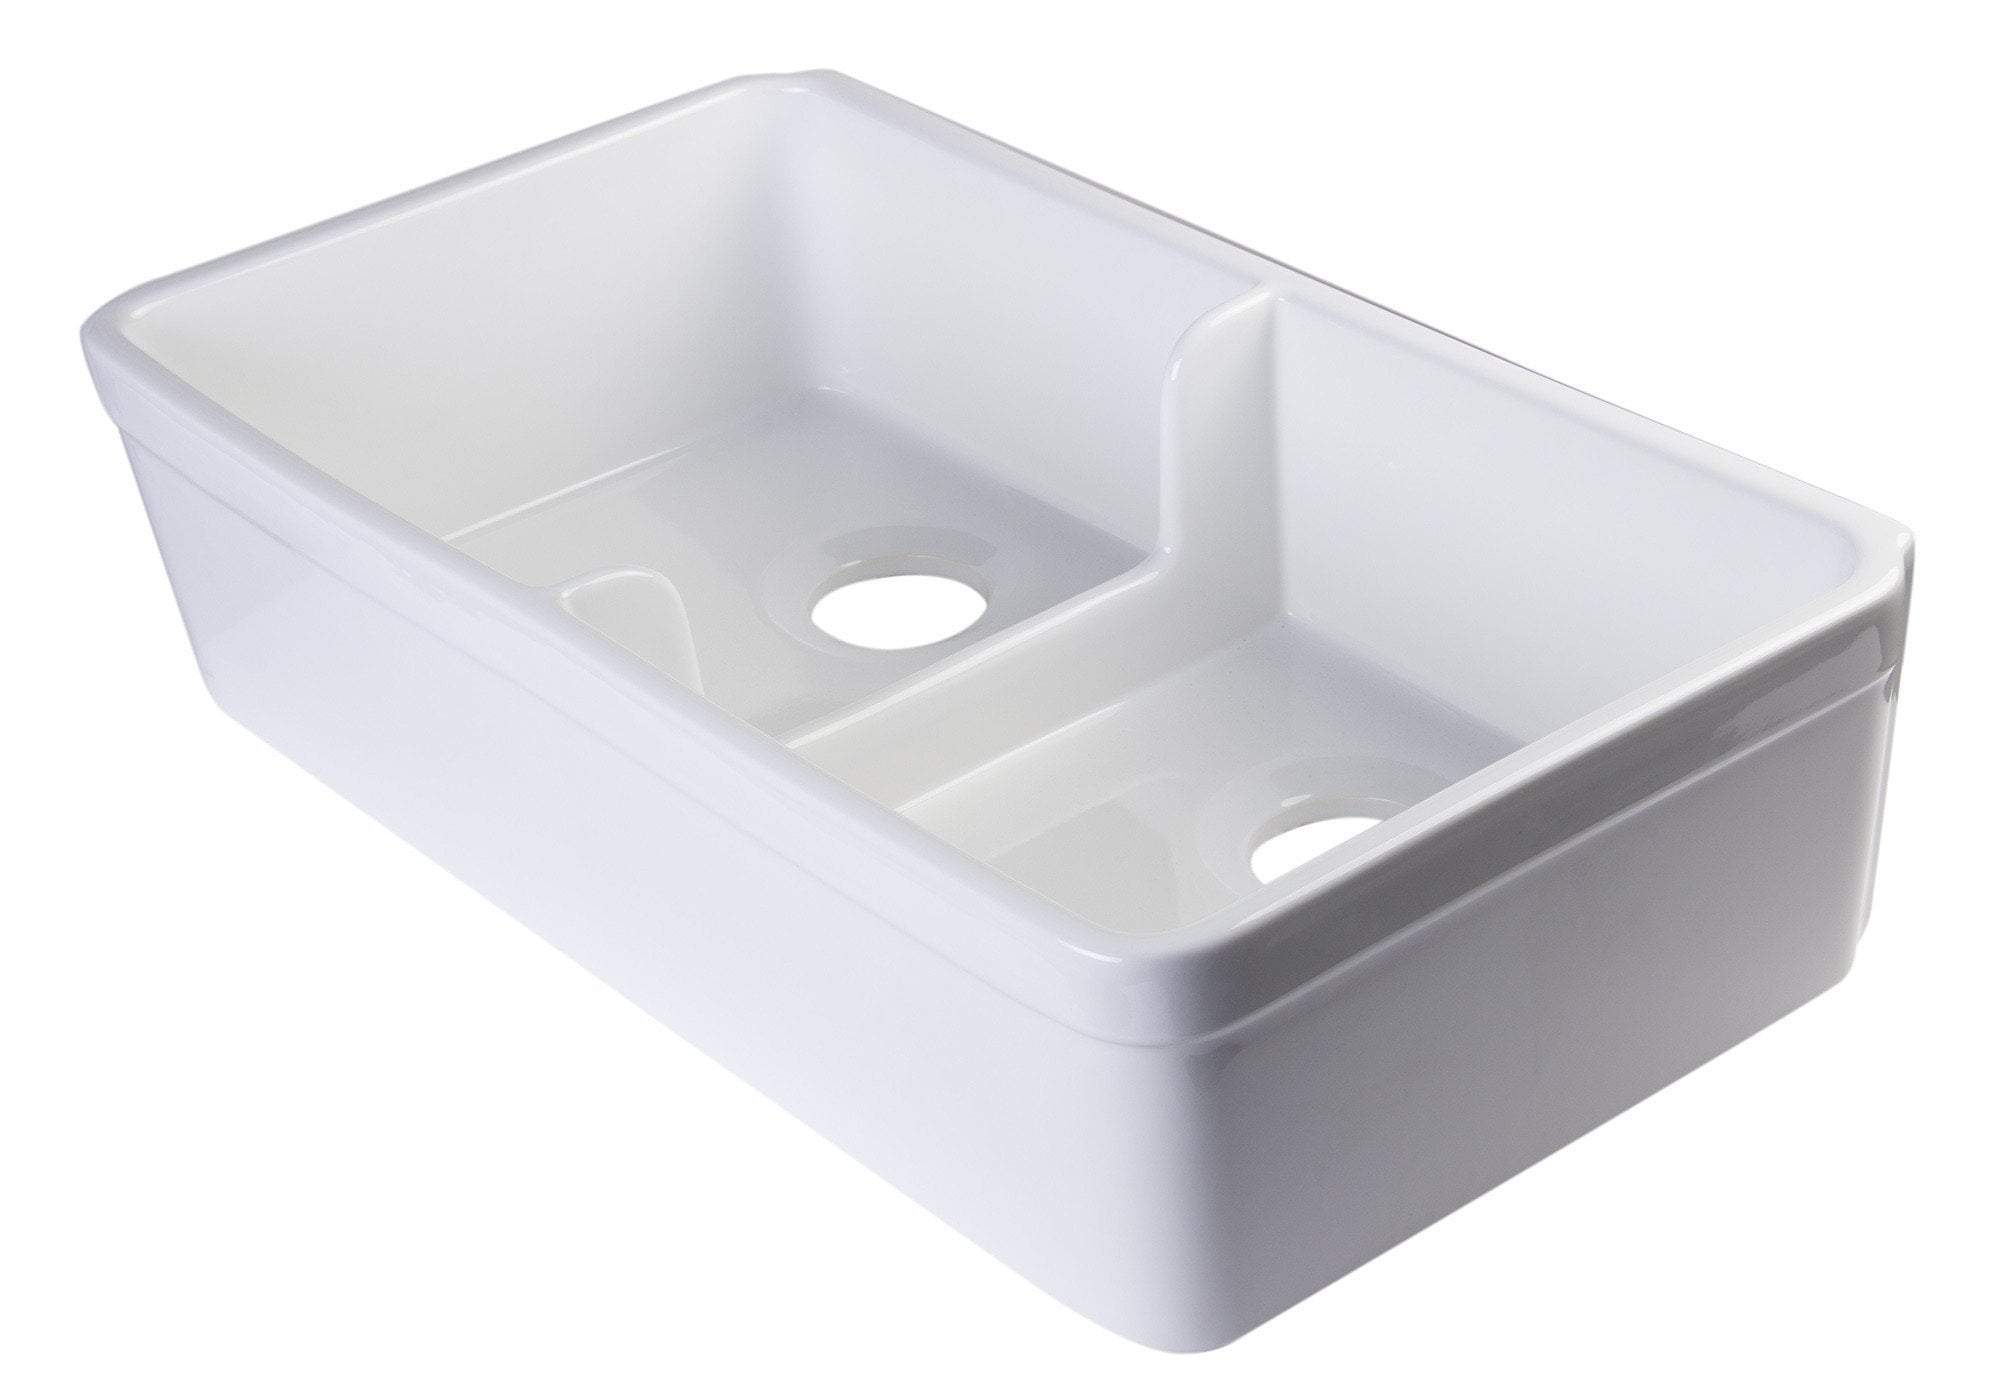 alfi biscuit 32 short wall double bowl fireclay farmhouse kitchen sink with 1 3 4 lip ab5123 b